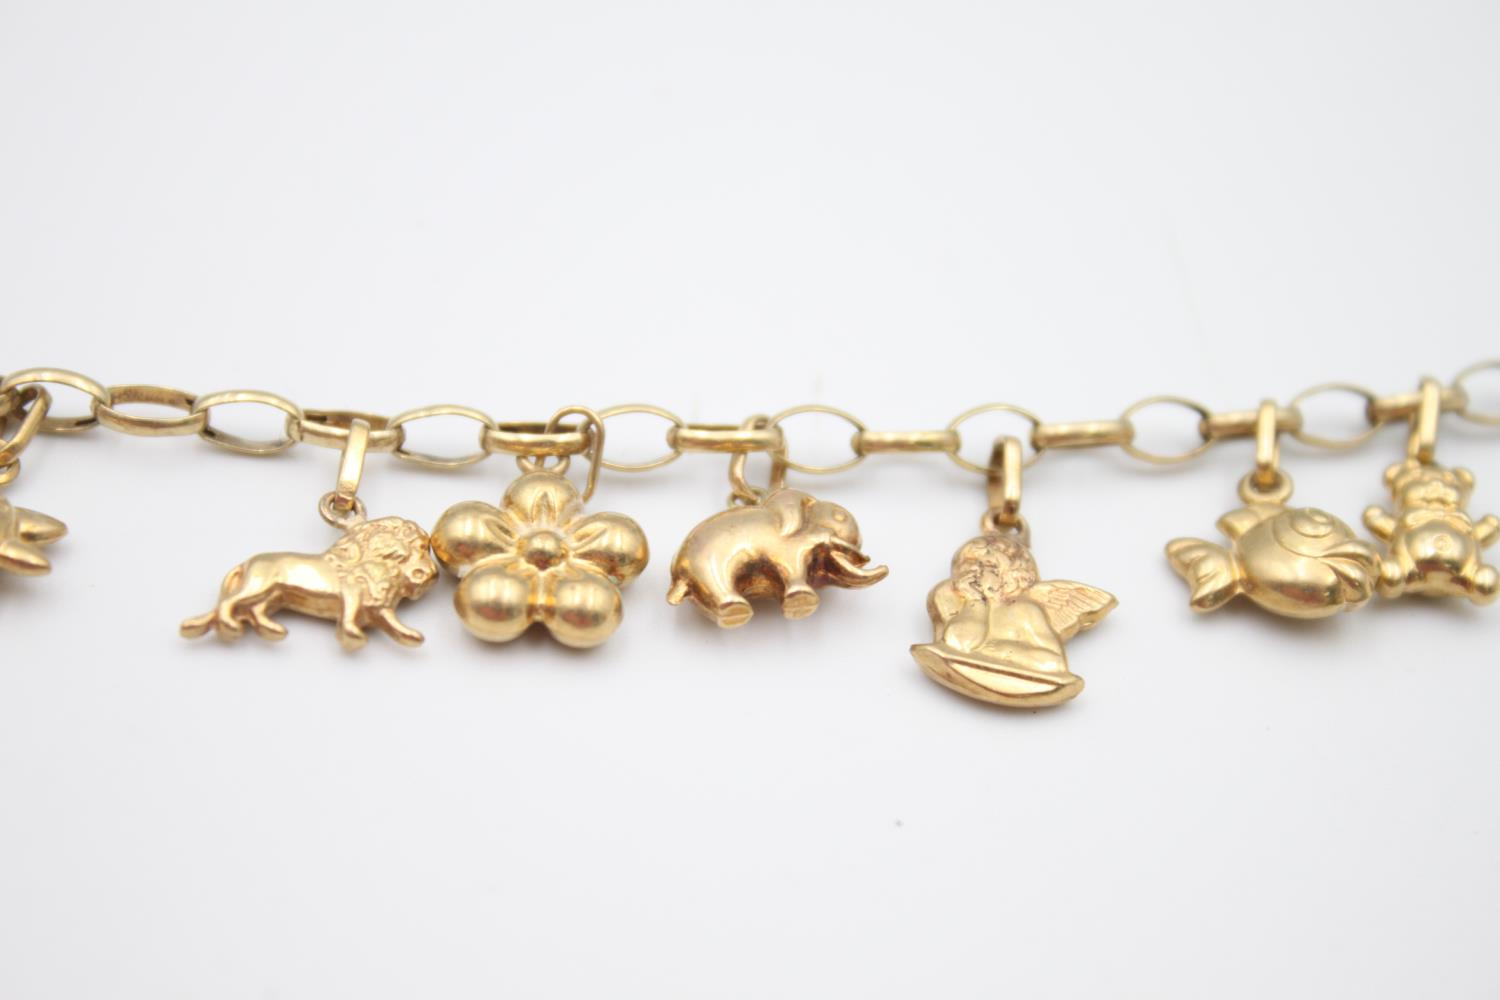 vintage 9ct gold rolo link charm bracelet with a variety of charms 5.7g - Image 6 of 7